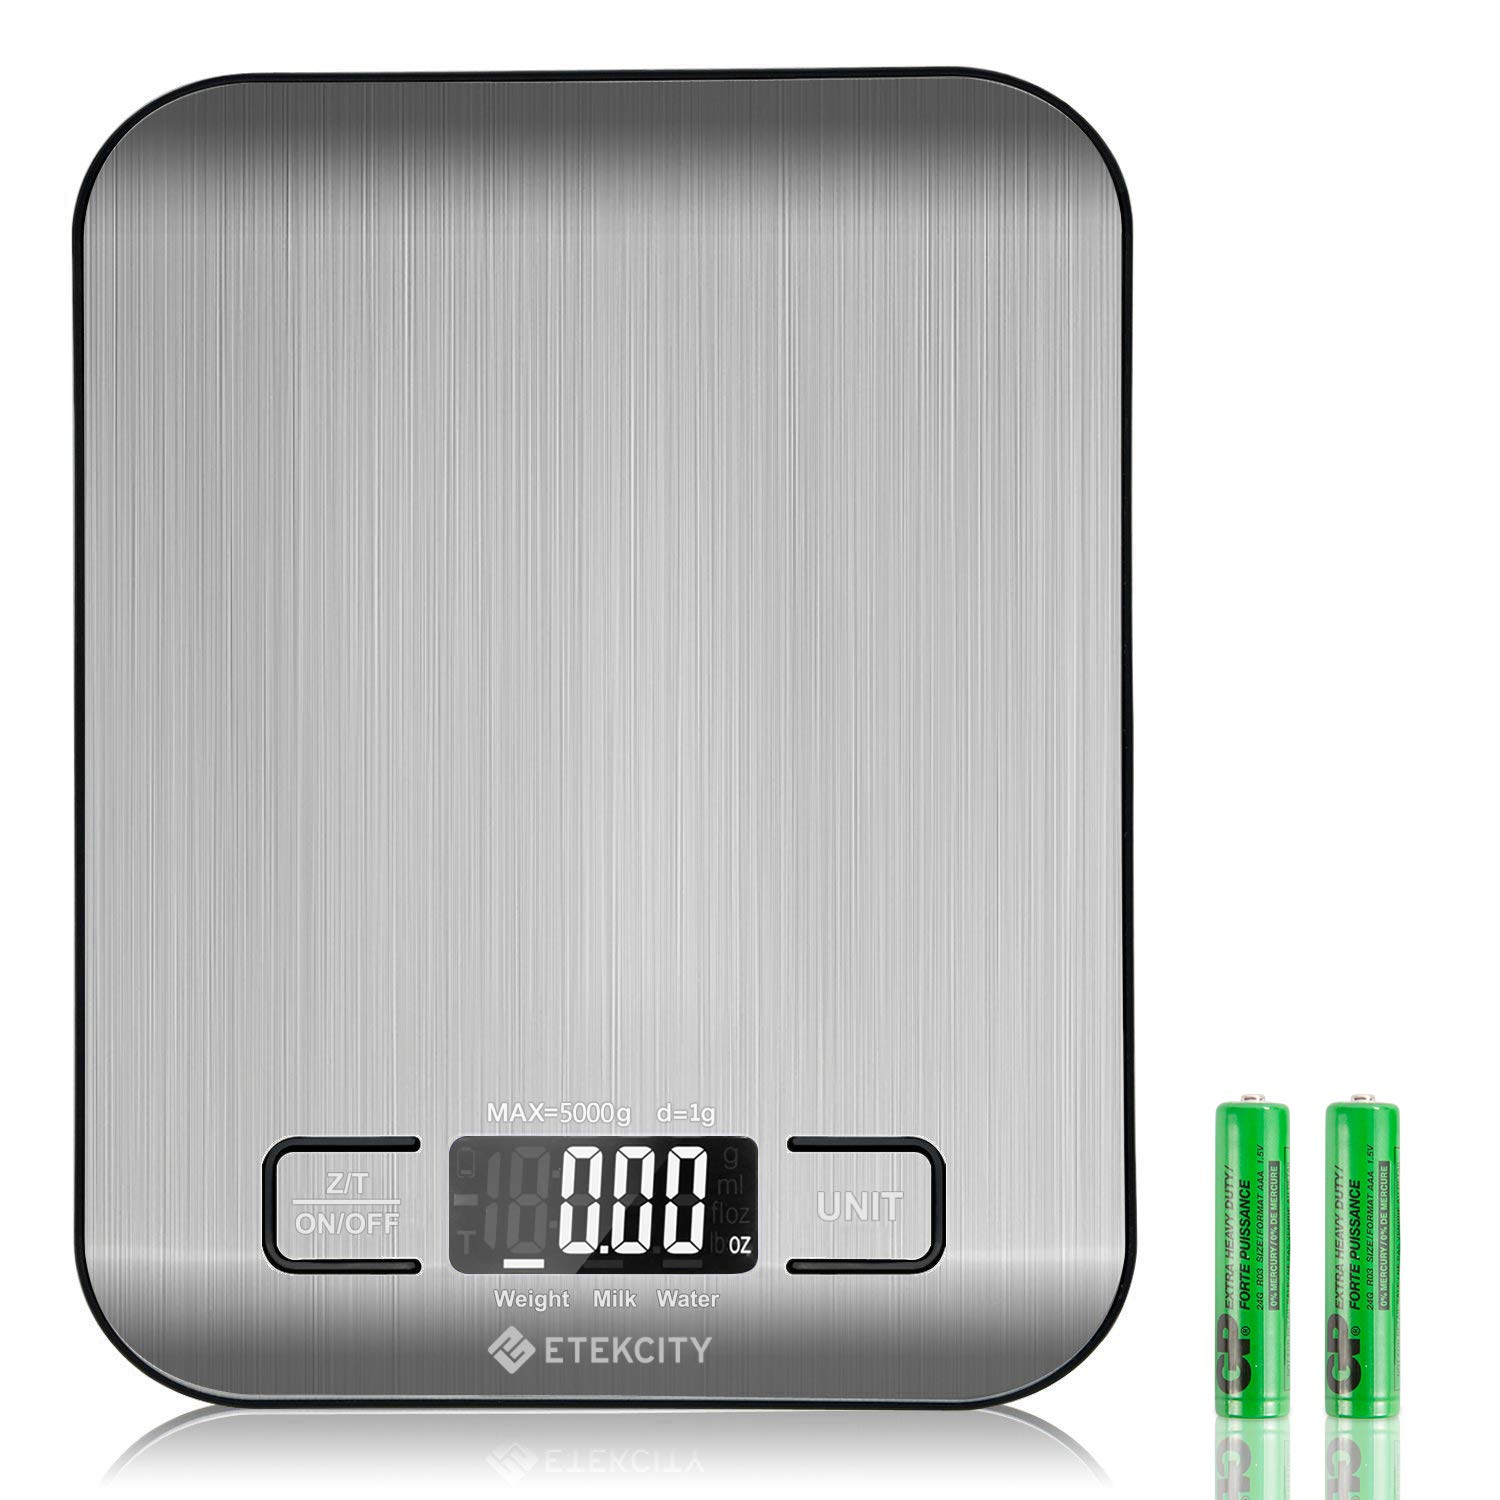 Etekcity Upgraded Digital Kitchen Food Scale Multifunction Small Scale, Back-lit LCD Display, 11 lb 5 kg, Stainless Steel (Batteries Included)